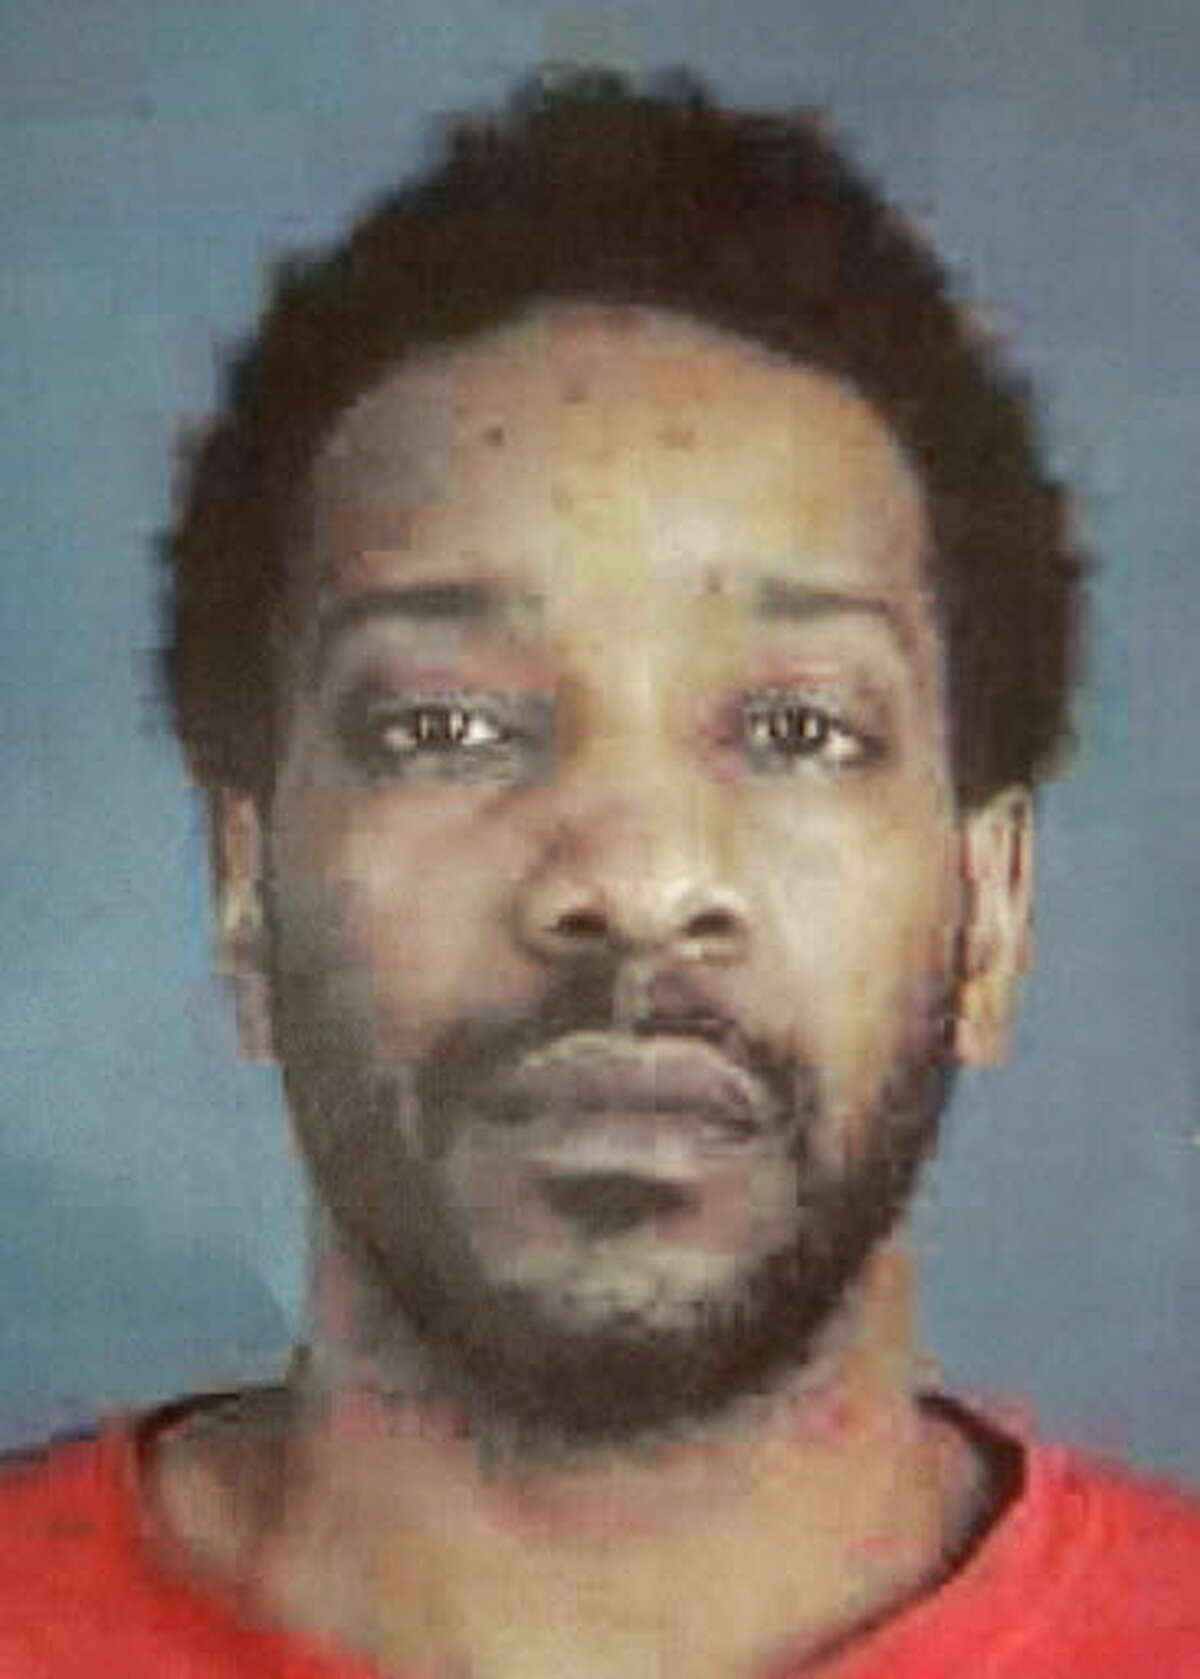 In 2009, Jovan Underdue received the maximum sentence possible from Judge Stephen Herrick for murdering Bobby Jones, 26; Victor Anderson, 25; and Keynon Hankins, 16, all of whom were found on Jan. 30, 2008, shot in the head inside 190 Delaware Ave., Albany.